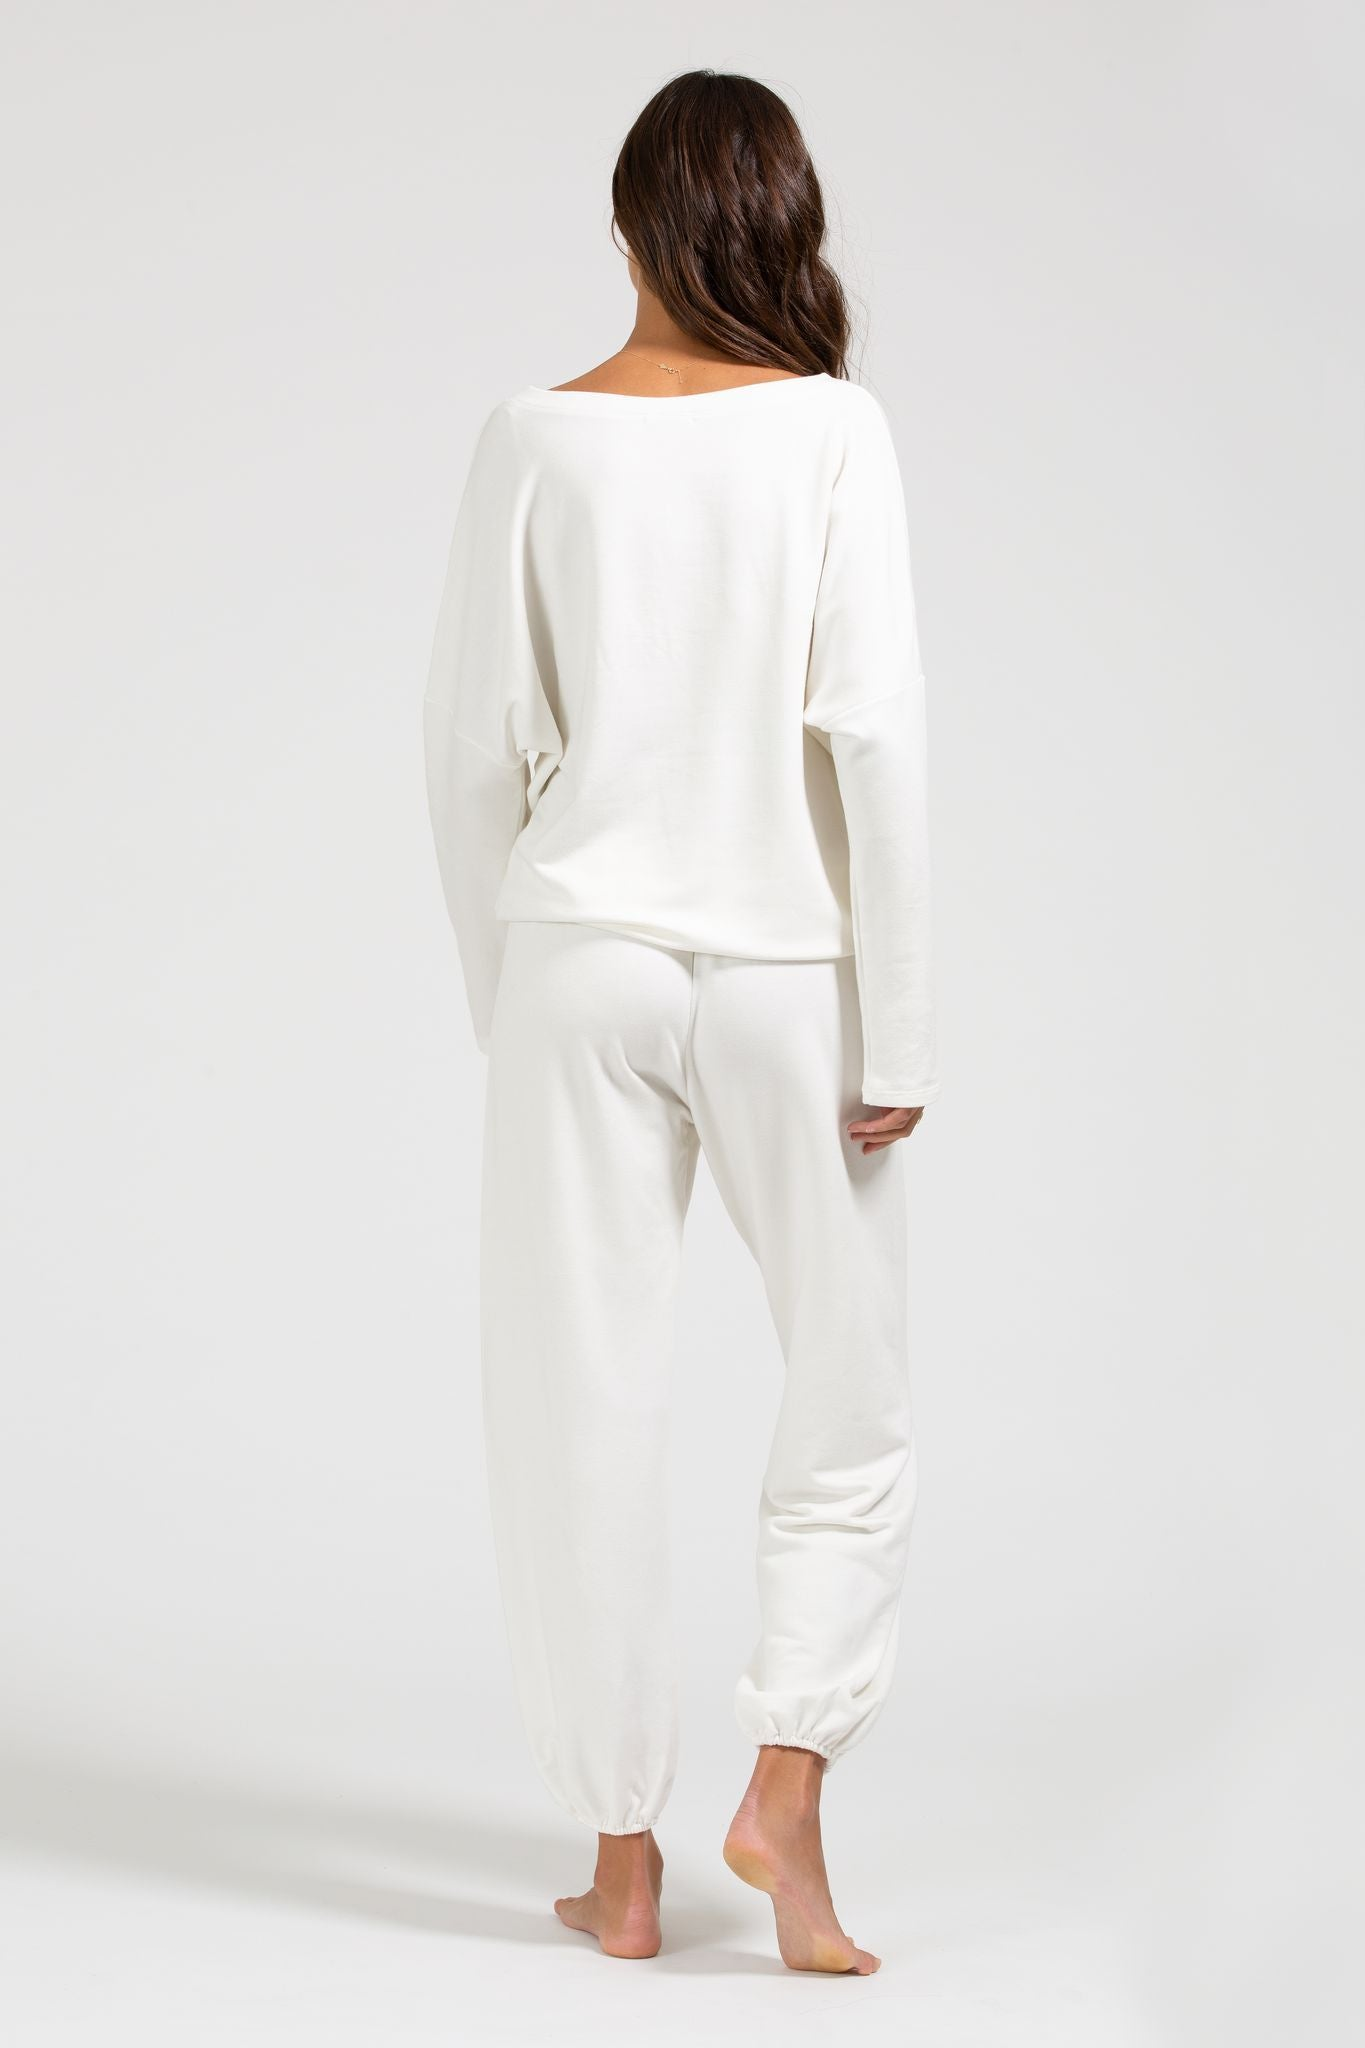 Load image into Gallery viewer, Winter Heather Slouchy Top - Winter White | Eberjey - Women's Sleepwear